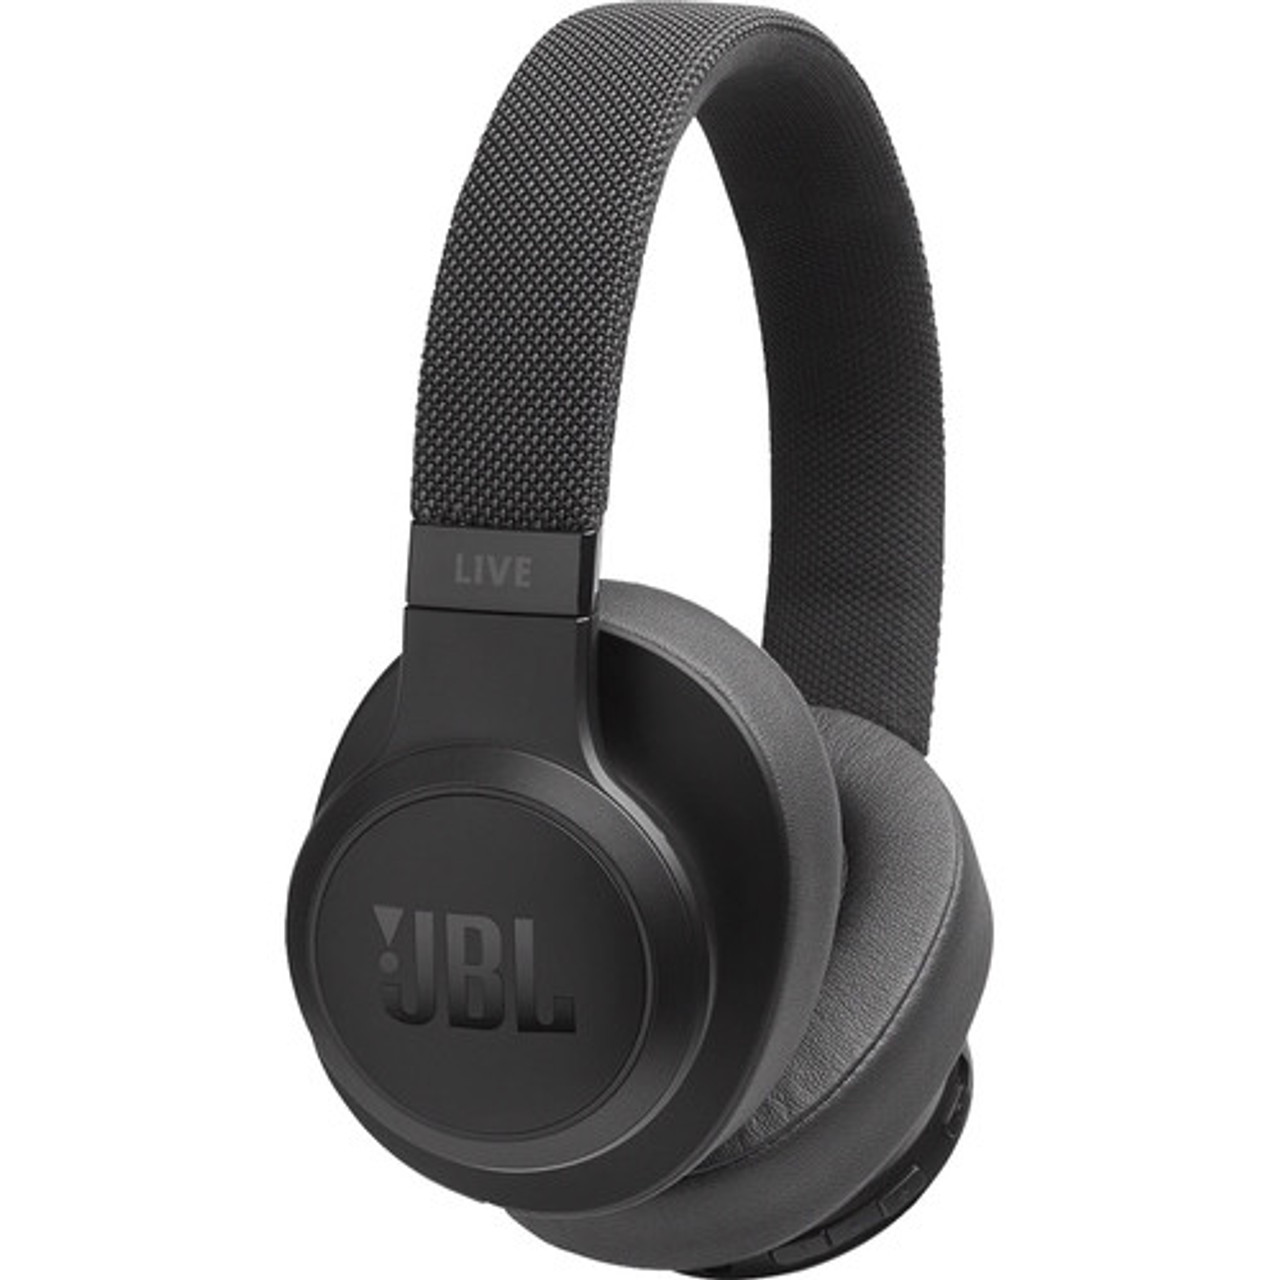 JBL JBLLIVE500BTBKAM-Z LIVE 500BT Wireless Headphones Black -Refurbished